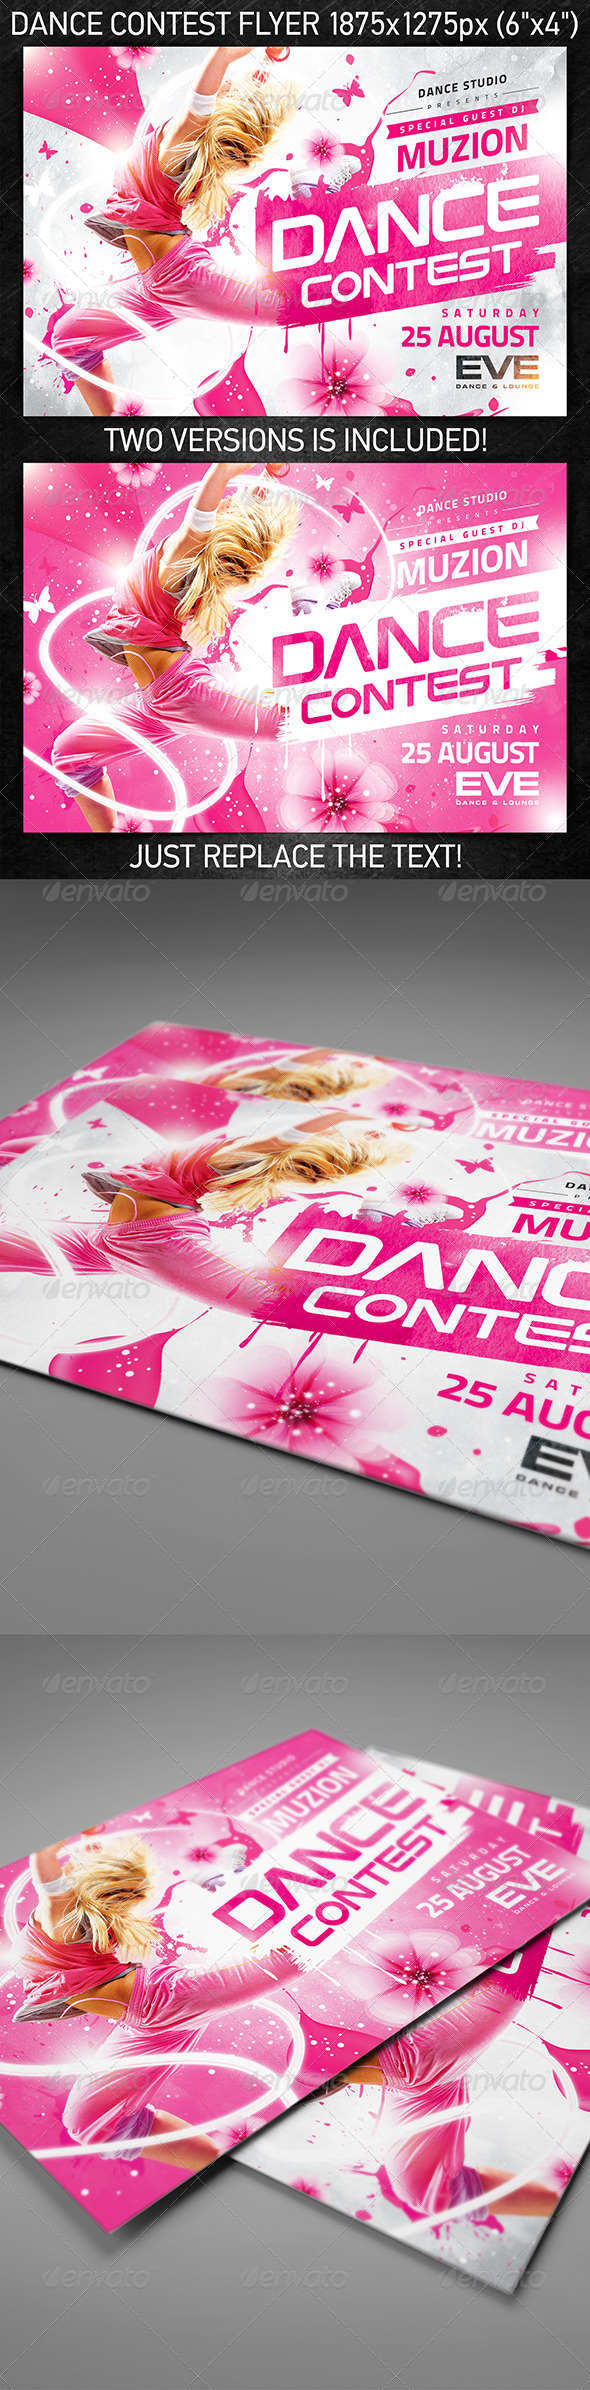 Dance Contest Flyer vol.2 - Clubs & Parties Events